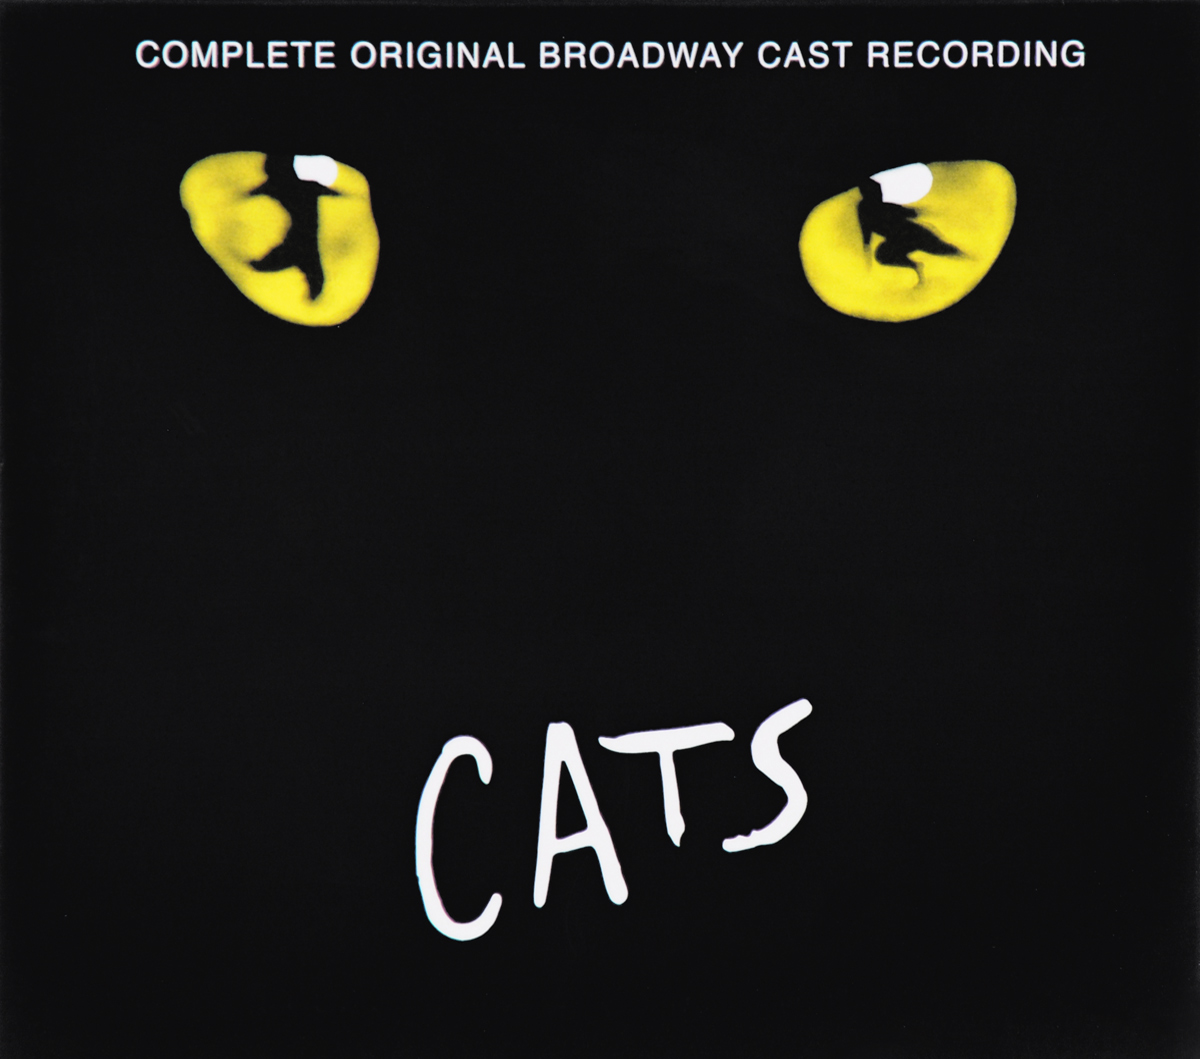 Original Broadway Cast Chorus Andrew Lloyd Webber. Cats. Complete Original Broadway Cast Recording. Deluxe Edition (2 CD) cd дмитрий хворостовский georgy sviridov russia cast adrift